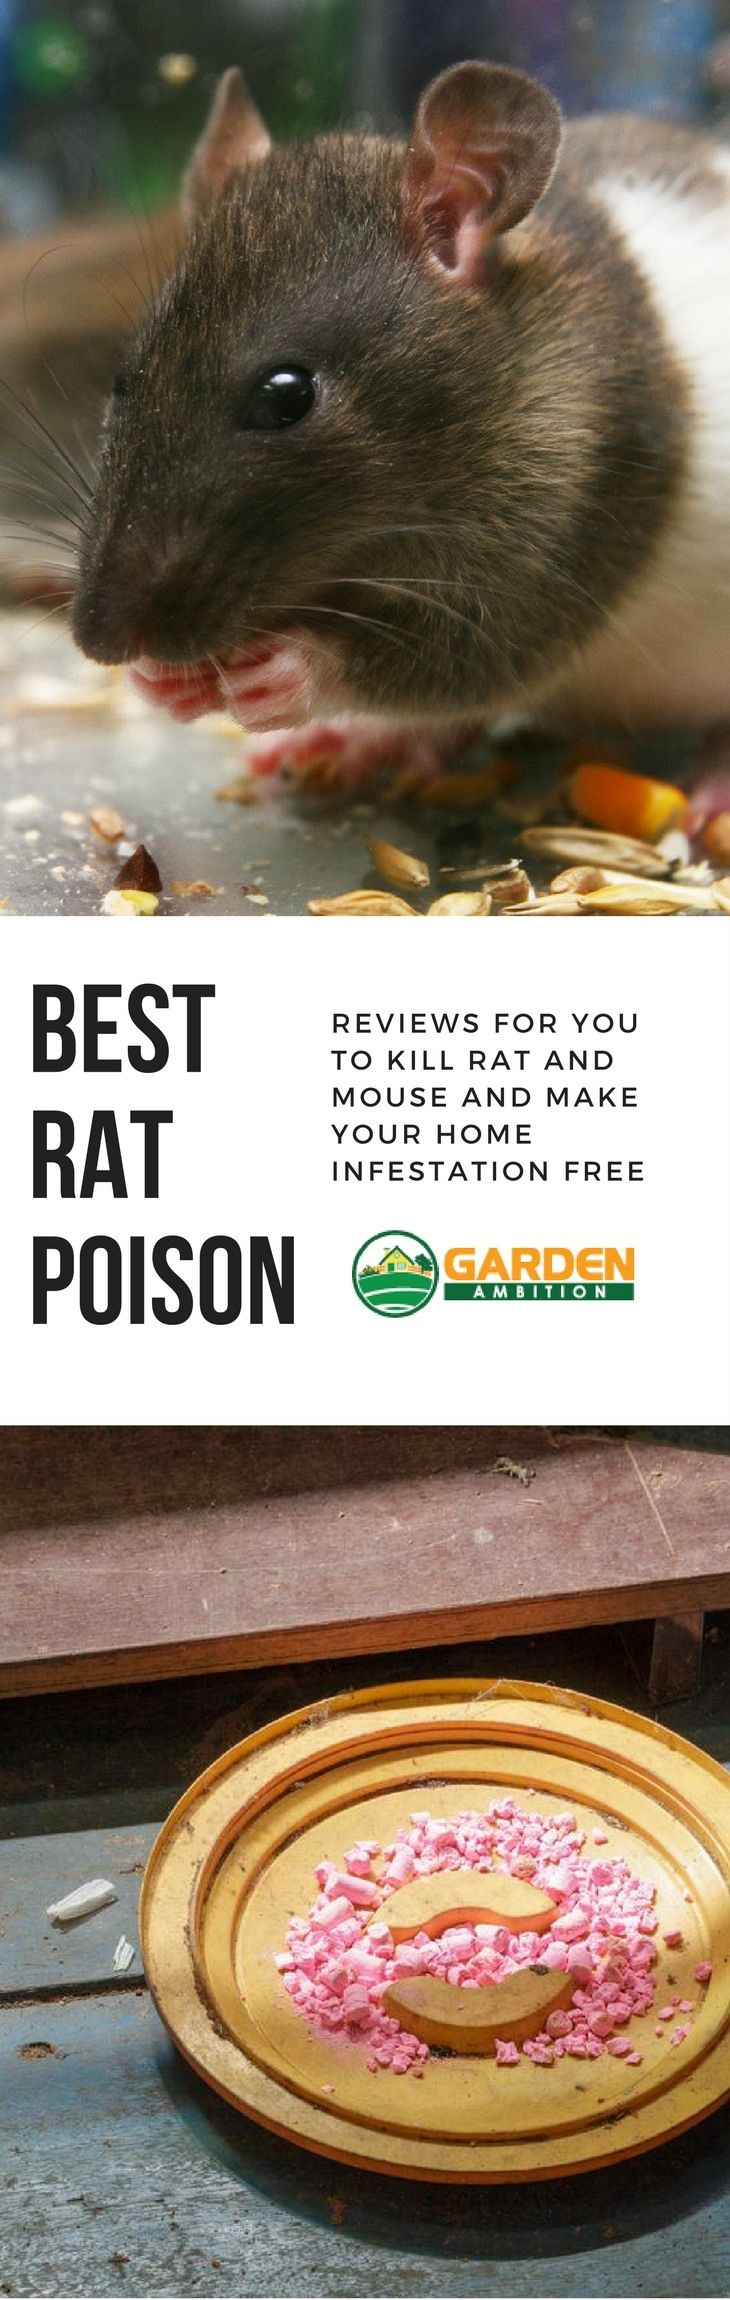 Best Rat Poison Reviews for You to Kill Rat & Mouse and Make Your Home Infestation Free